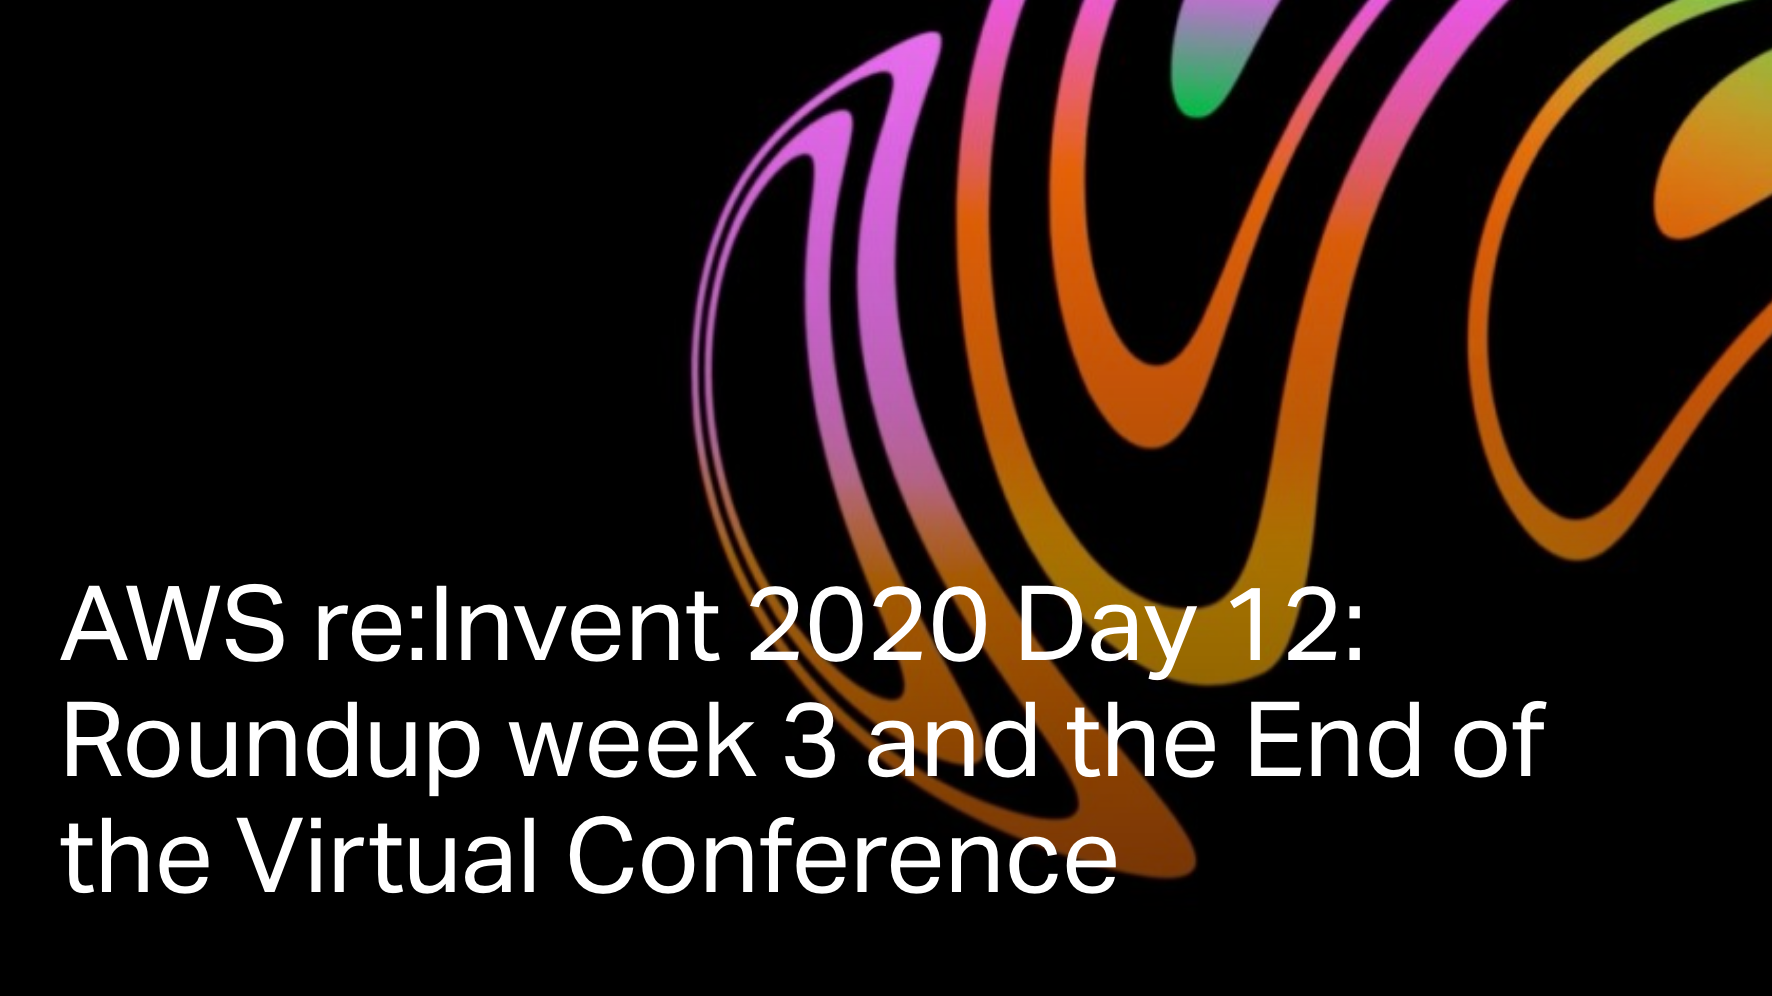 AWS re:Invent 2020 Day 12: Roundup week 3 and the End of the Virtual Conference